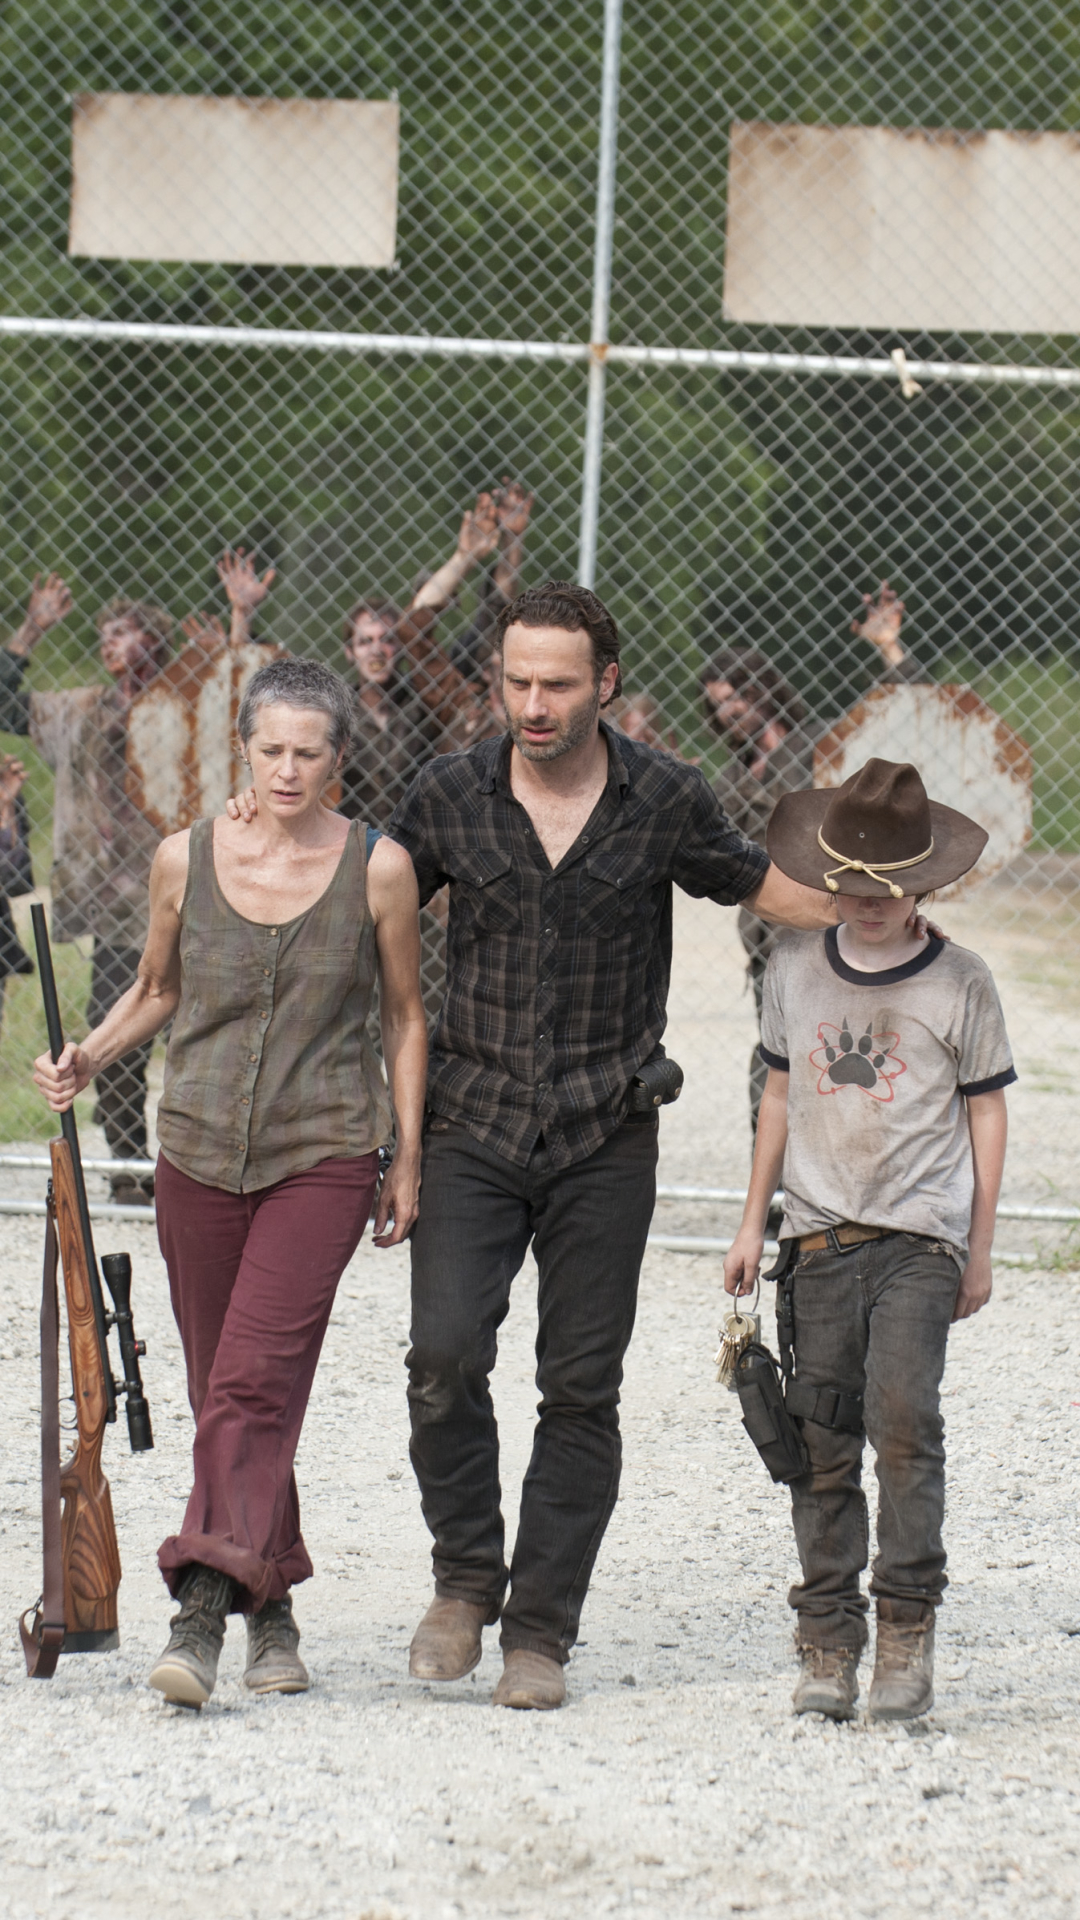 Tv Show The Walking Dead 720x1280 Wallpaper Id 411564 Mobile